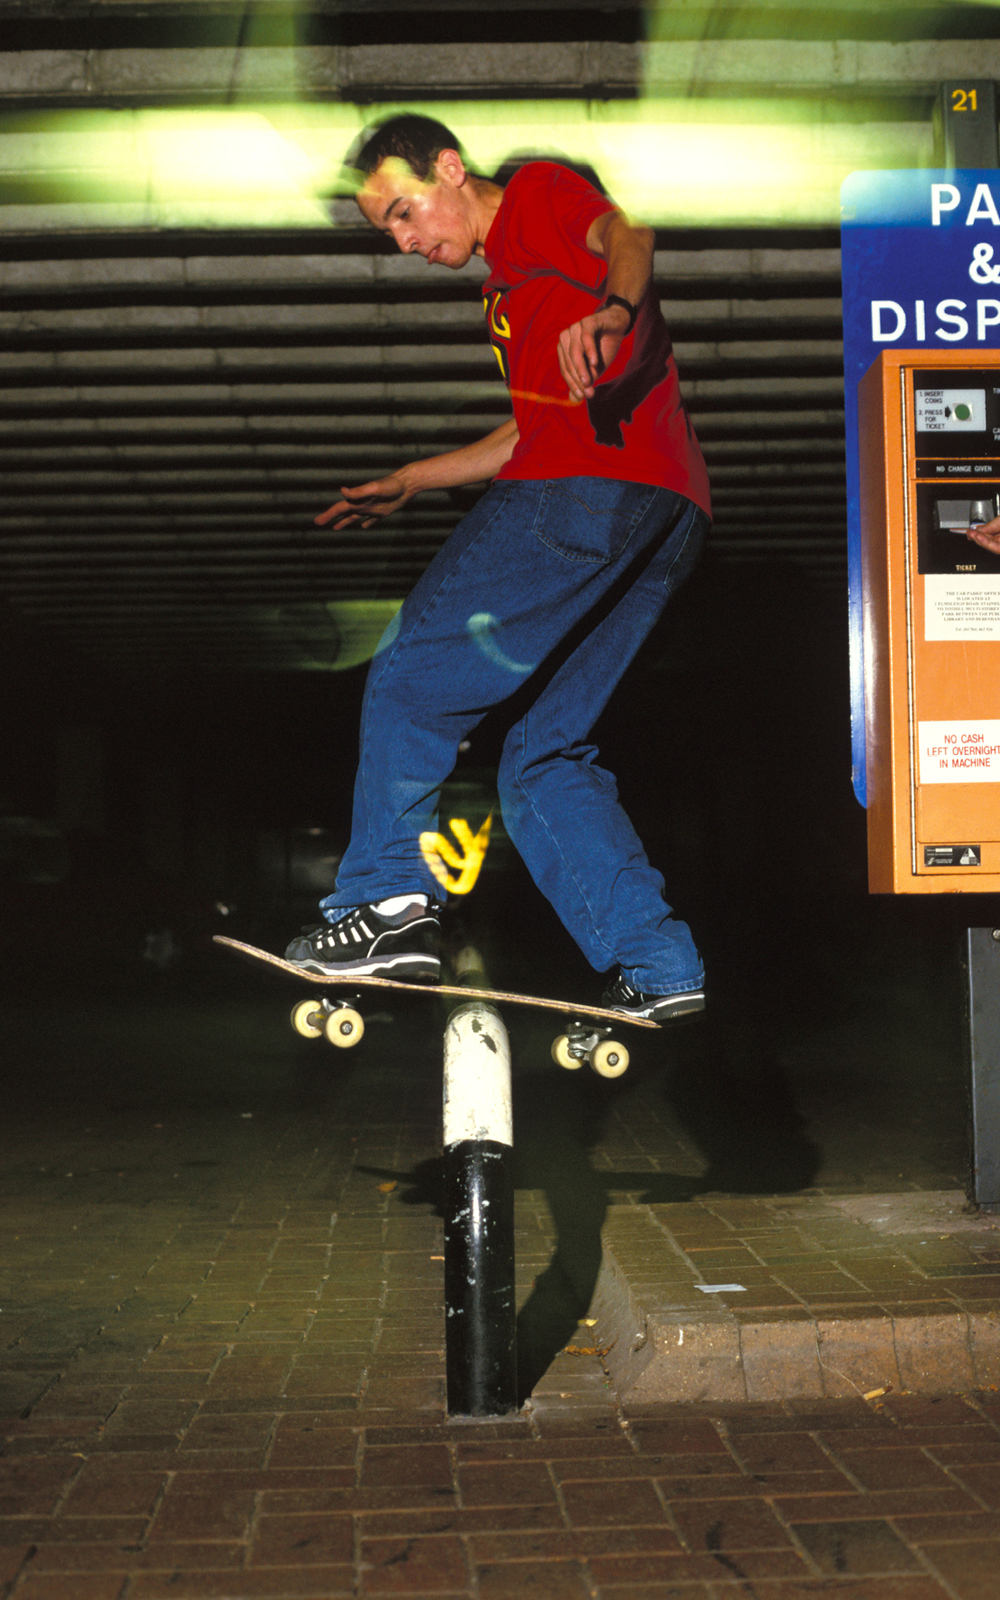 Skater, Robert Jaye, doing a rail-slide on a metal barrier in a car park, UK, 2000's . ©  Styley  / PYMCA